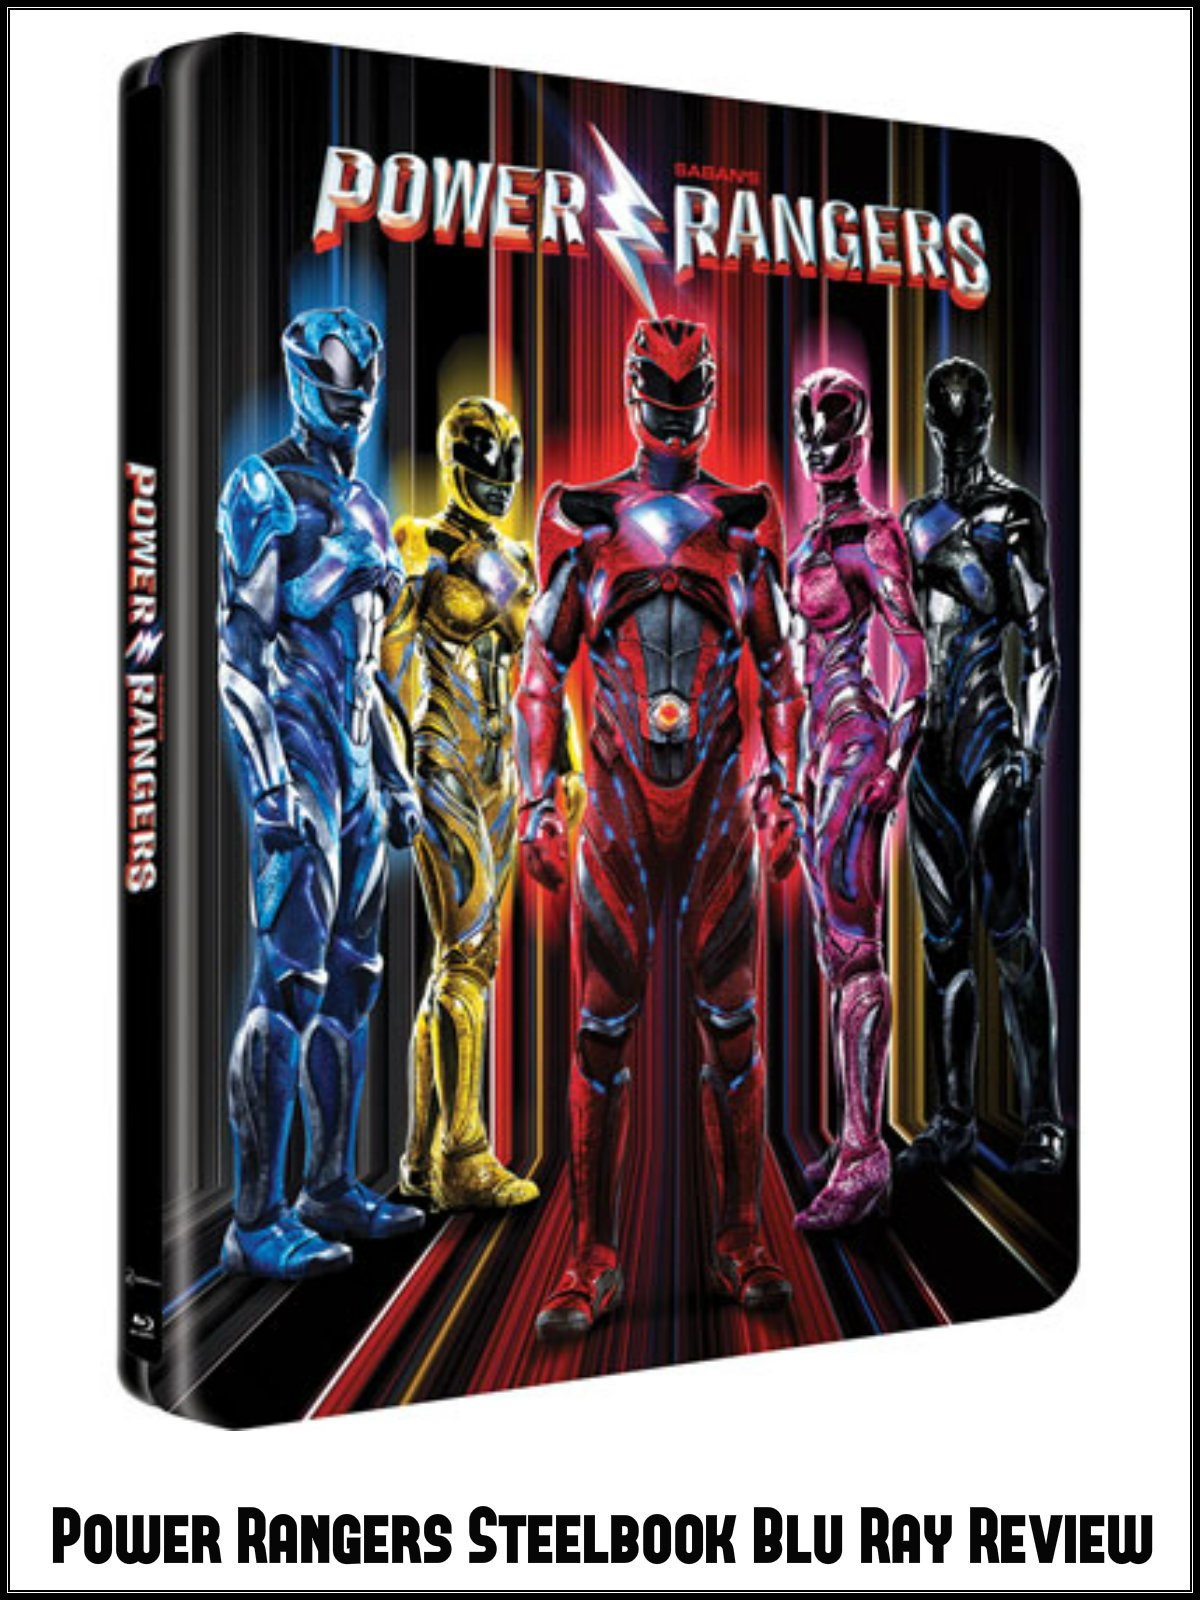 Review: Power Rangers Steelbook Blu Ray Review